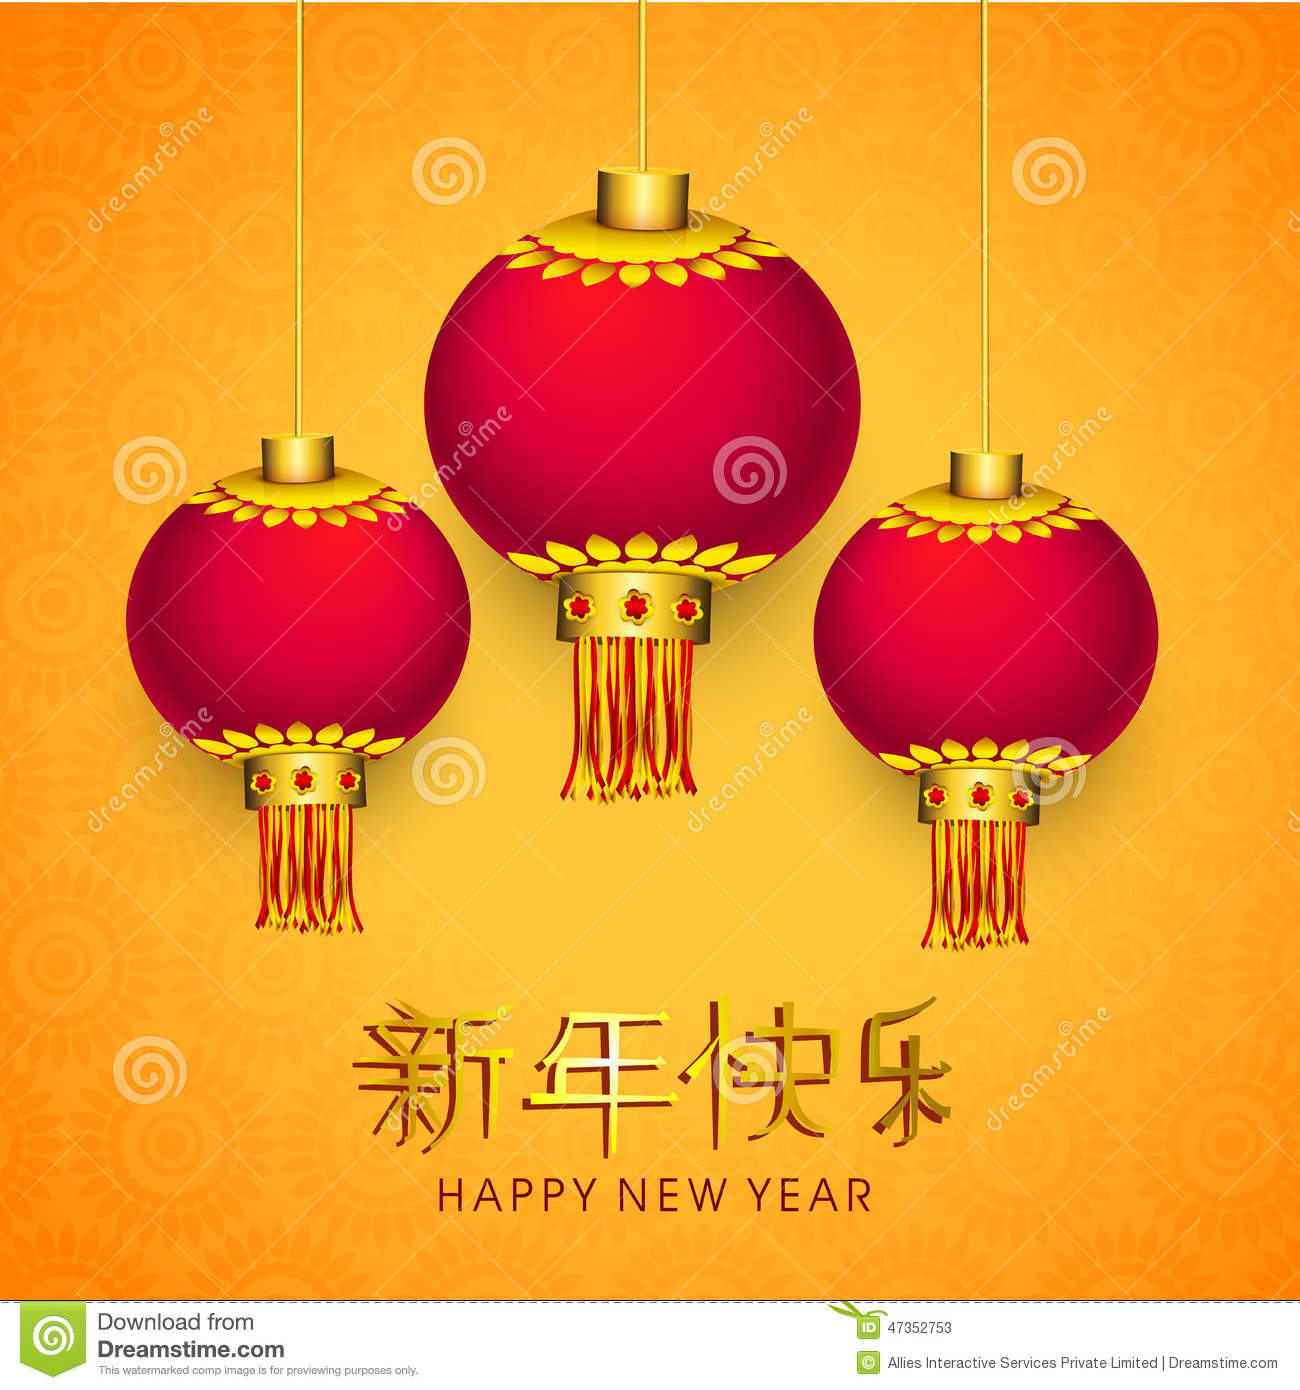 greeting card design for happy new year celebrations